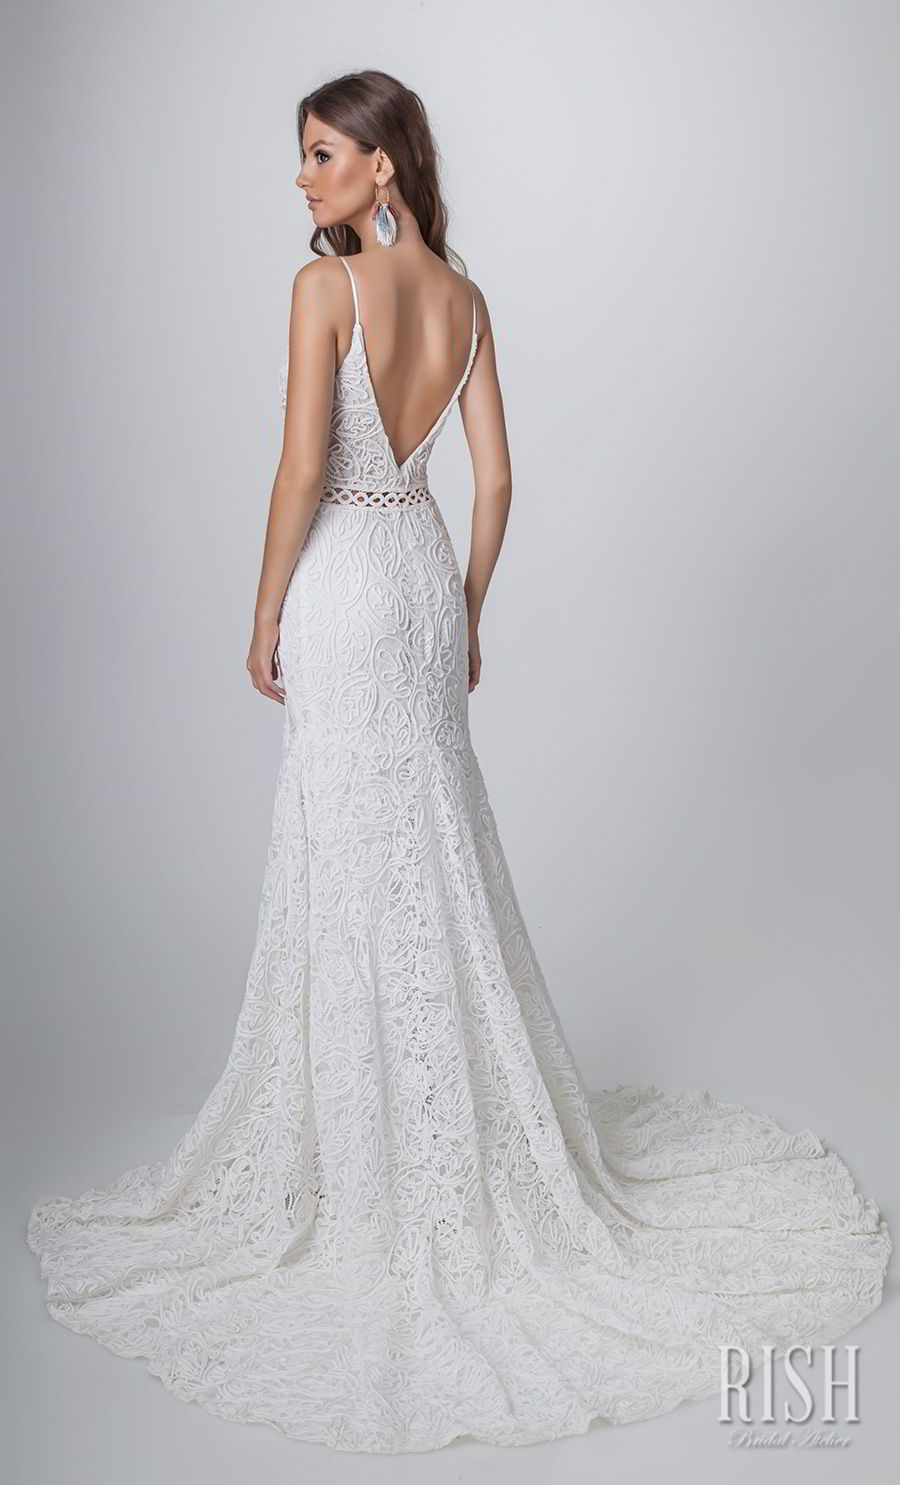 rish bridal sun dance 2018 sleeveless spaghetti strap deep sweetheart neckline full embellishment romantic modified a  line wedding dress open v back chapel train (sophia) bv